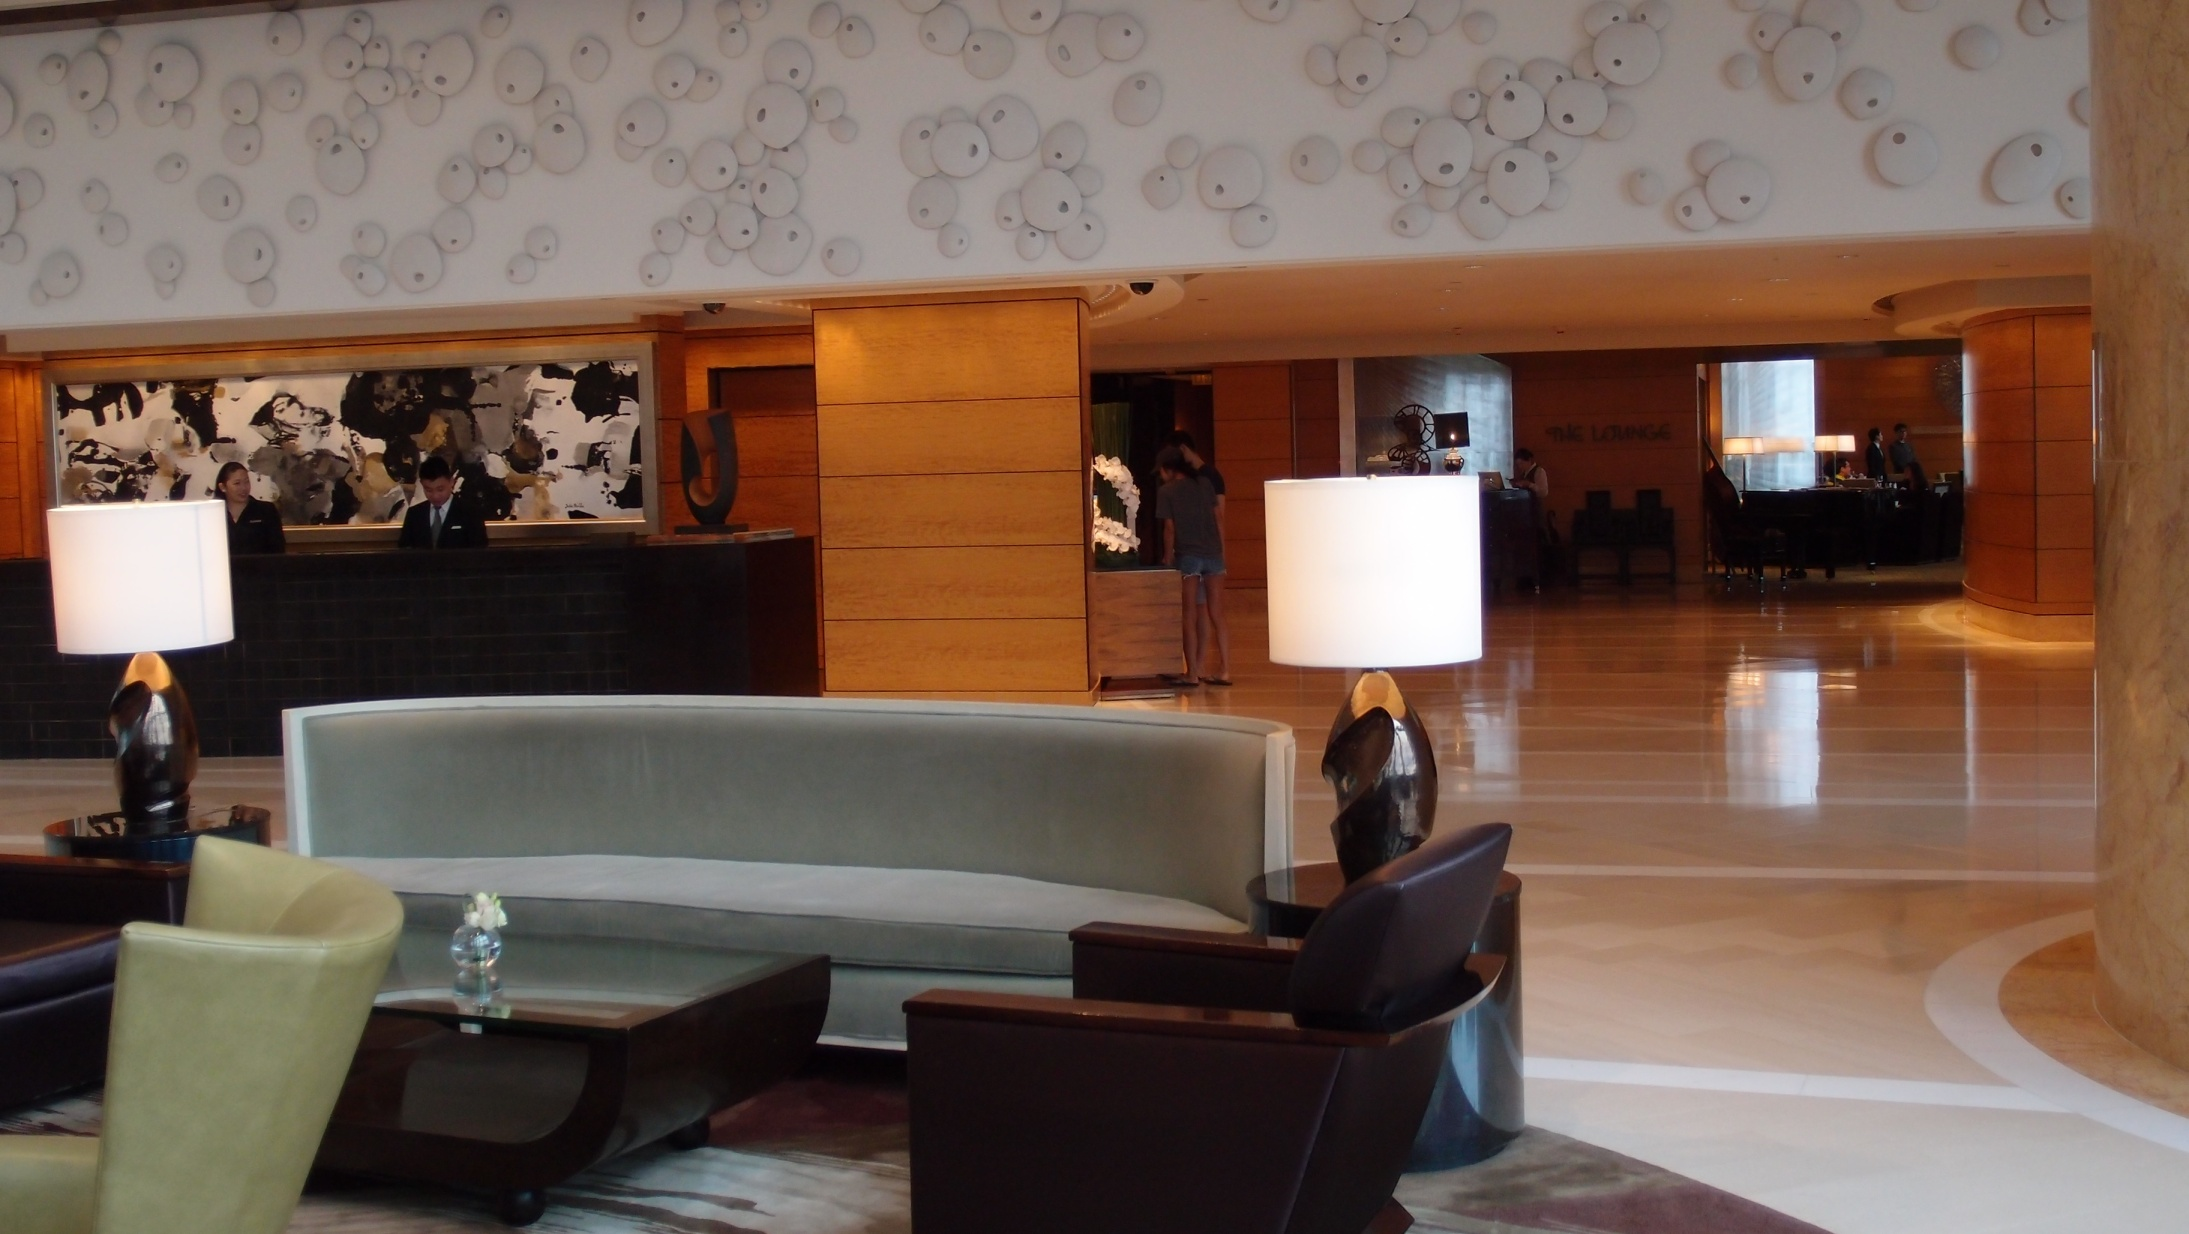 The Lounge (in the background), a fairly typical Hotel coffee shop